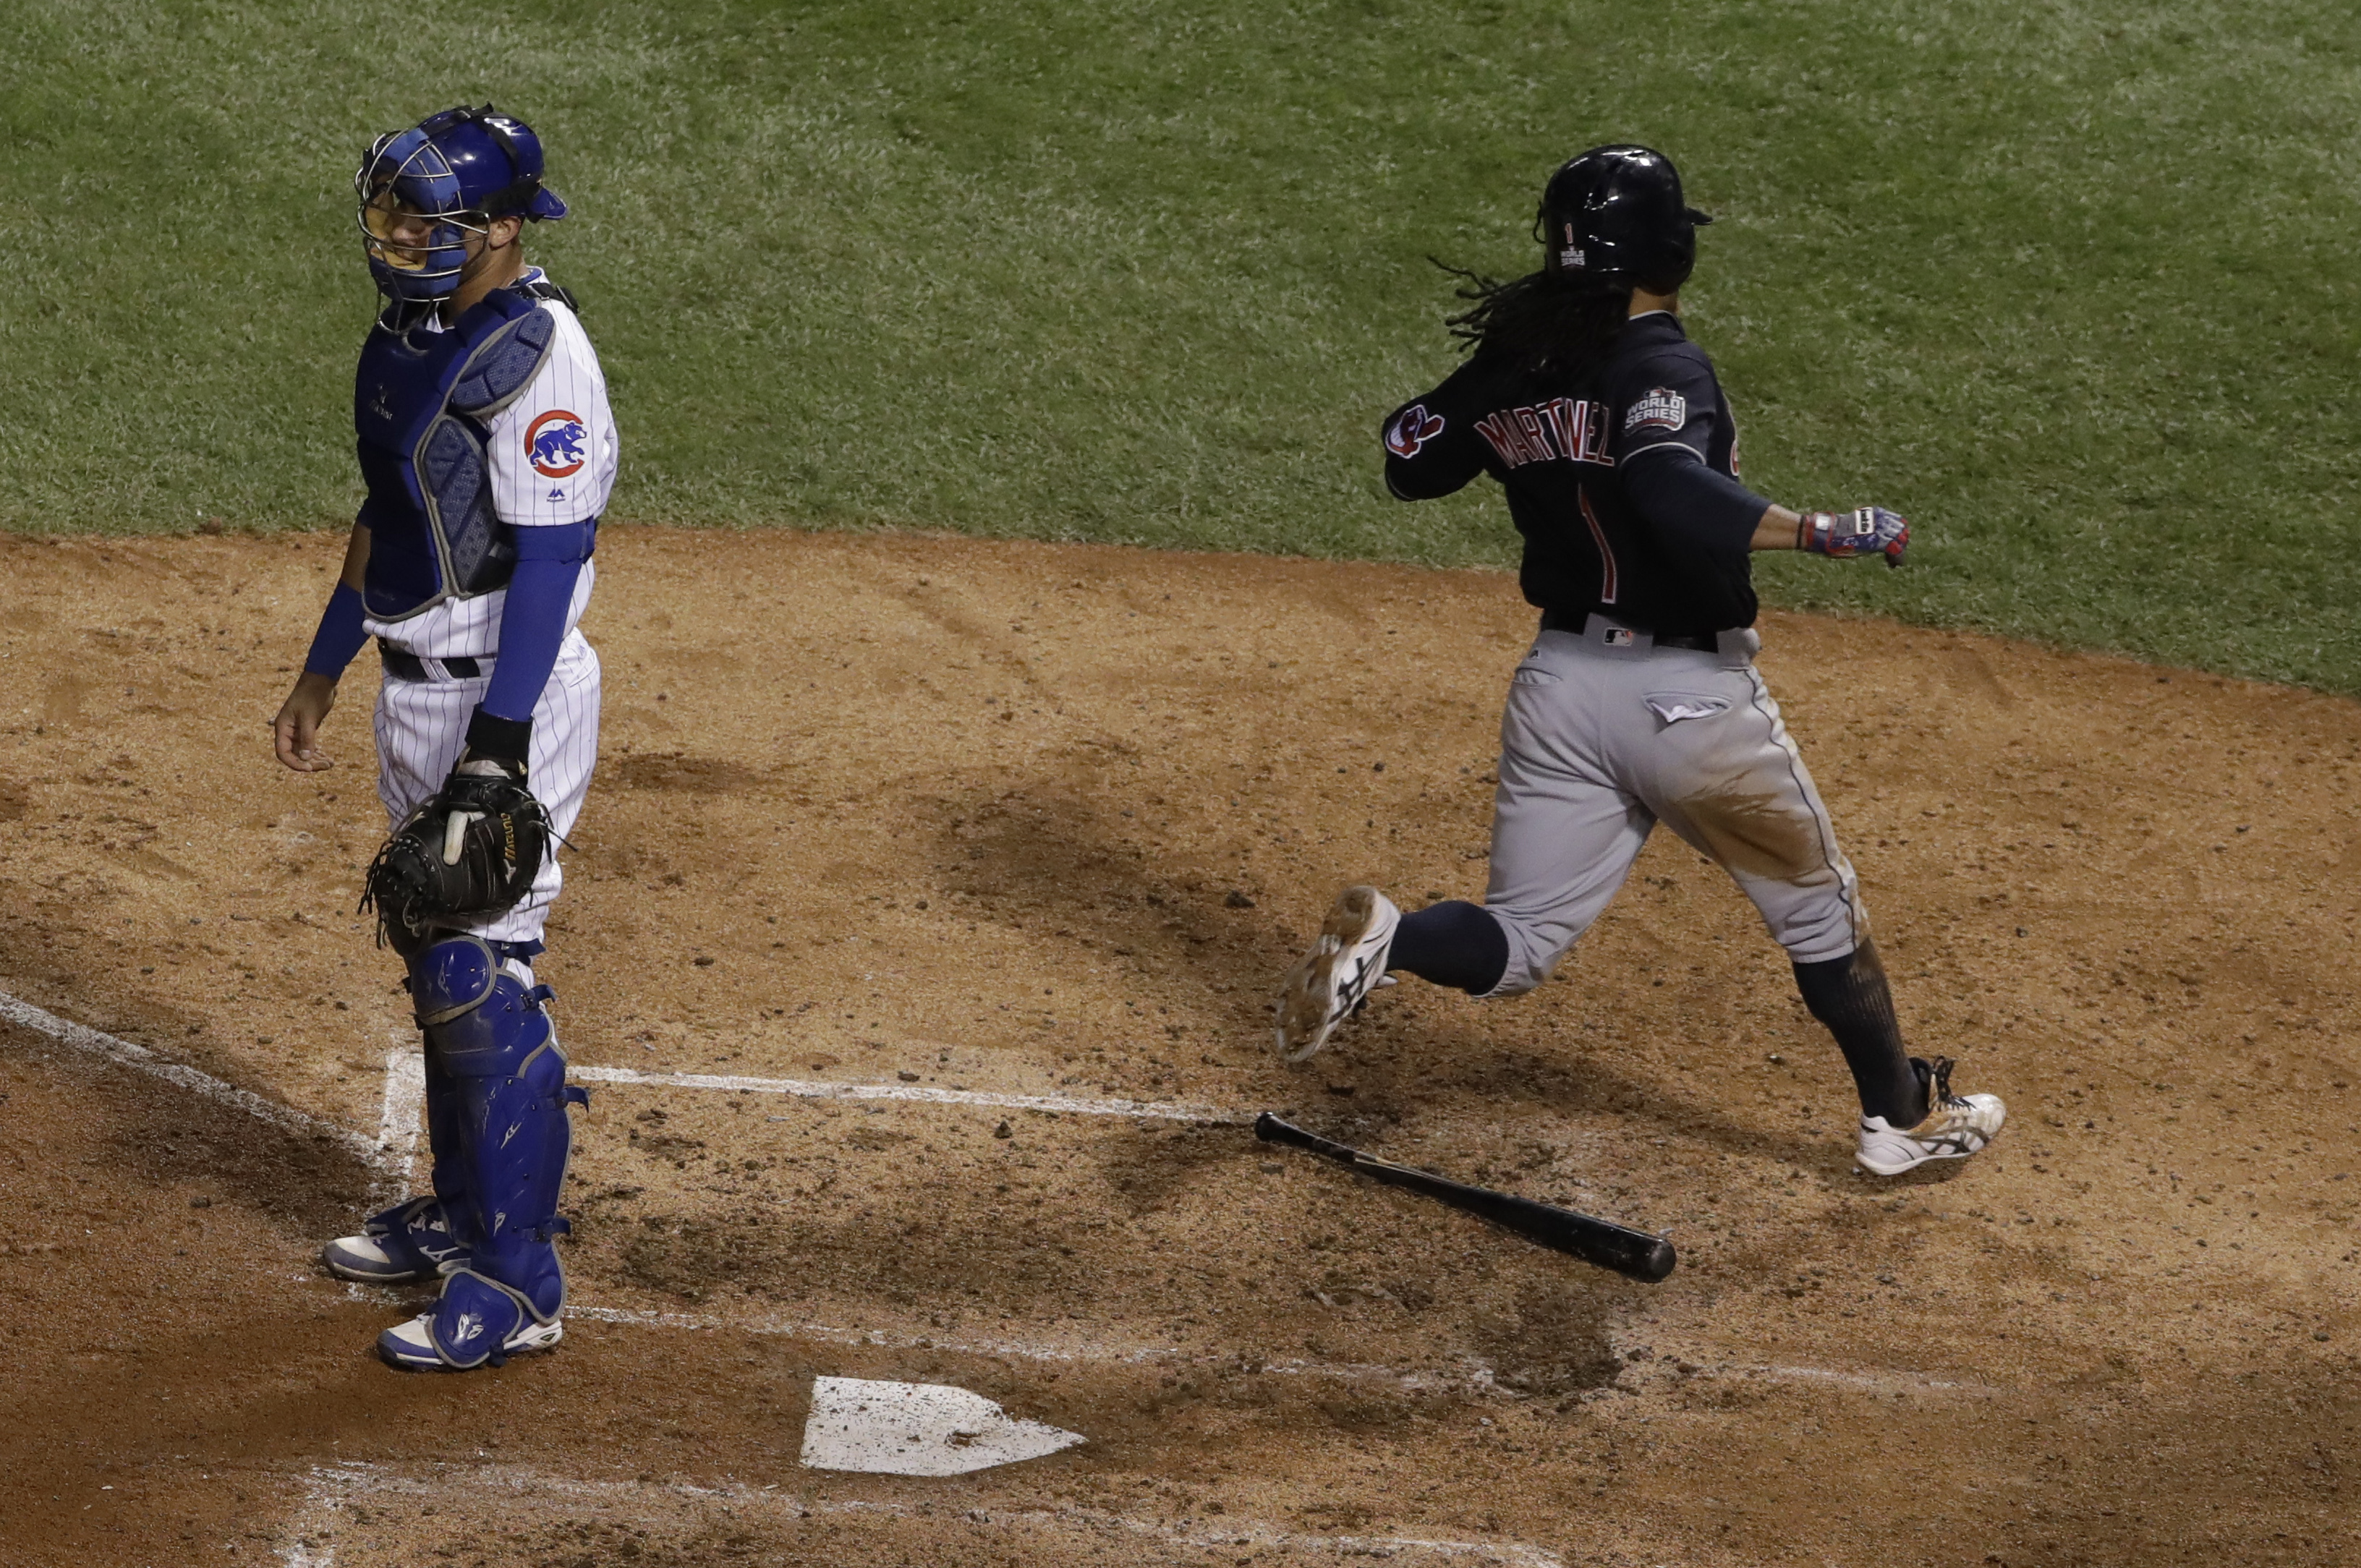 Cleveland Indians' Michael Martinez scores past Chicago Cubs catcher Willson Contreras during the seventh inning of Game 3 of the Major League Baseball World Series Friday, Oct. 28, 2016, in Chicago. Martinez scored from third on a hit by Coco Crisp. (AP